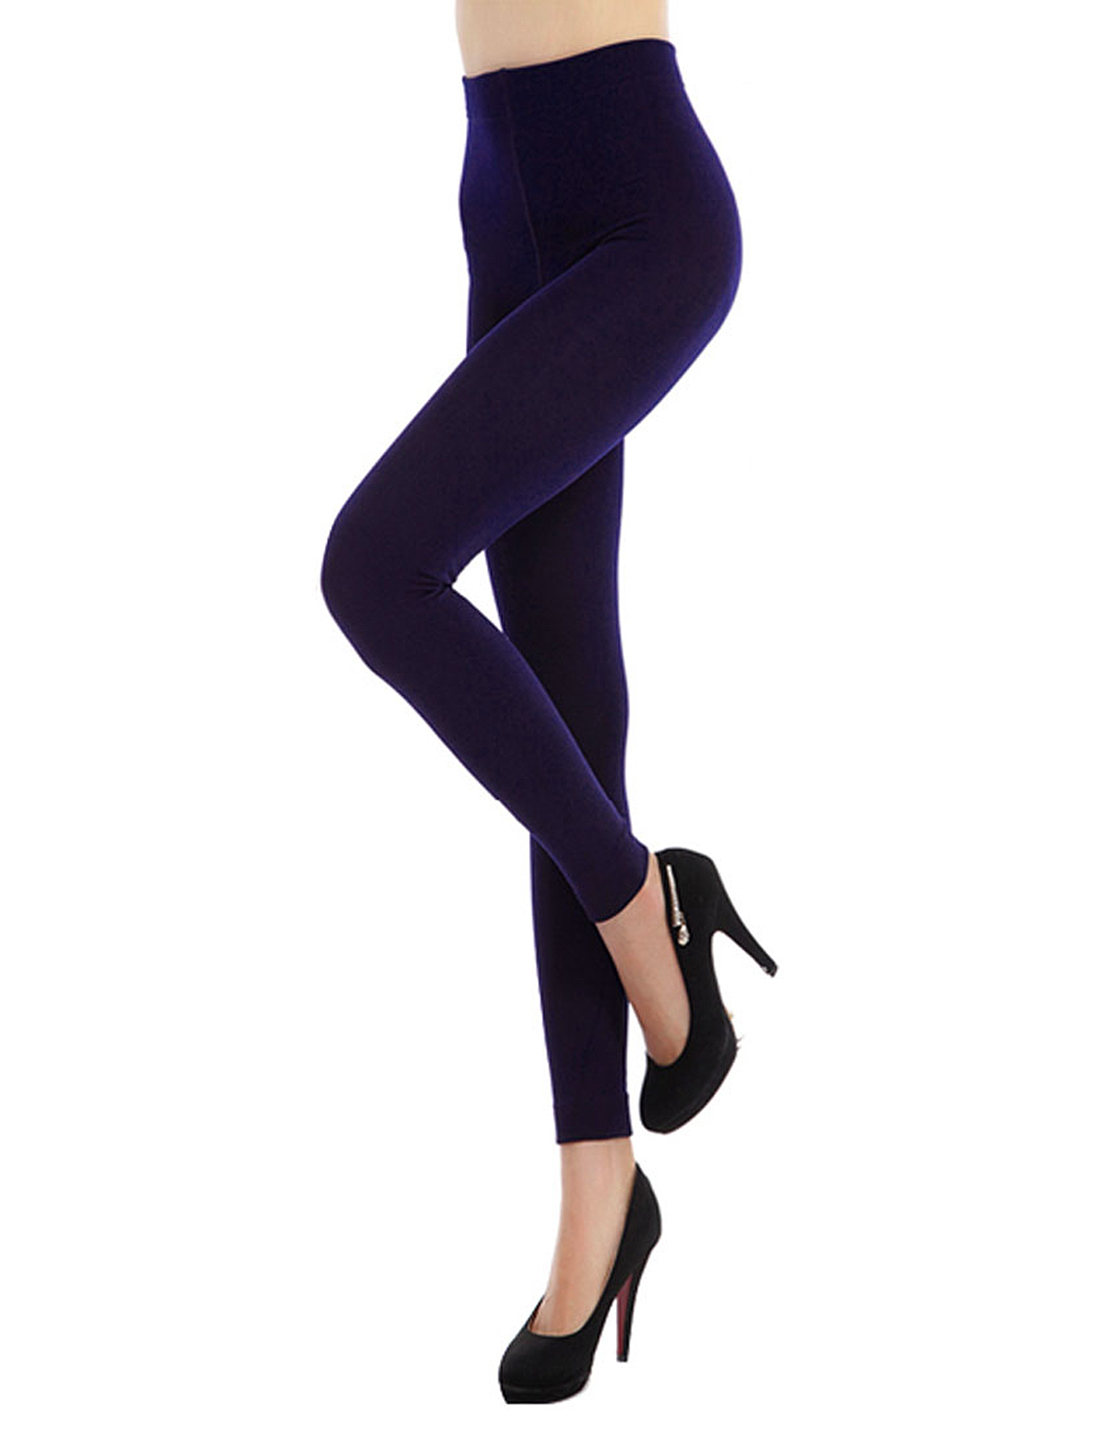 Slim Fit Stretchy Winter Warm Leggings Pantyhose Tights Purple XS for Women